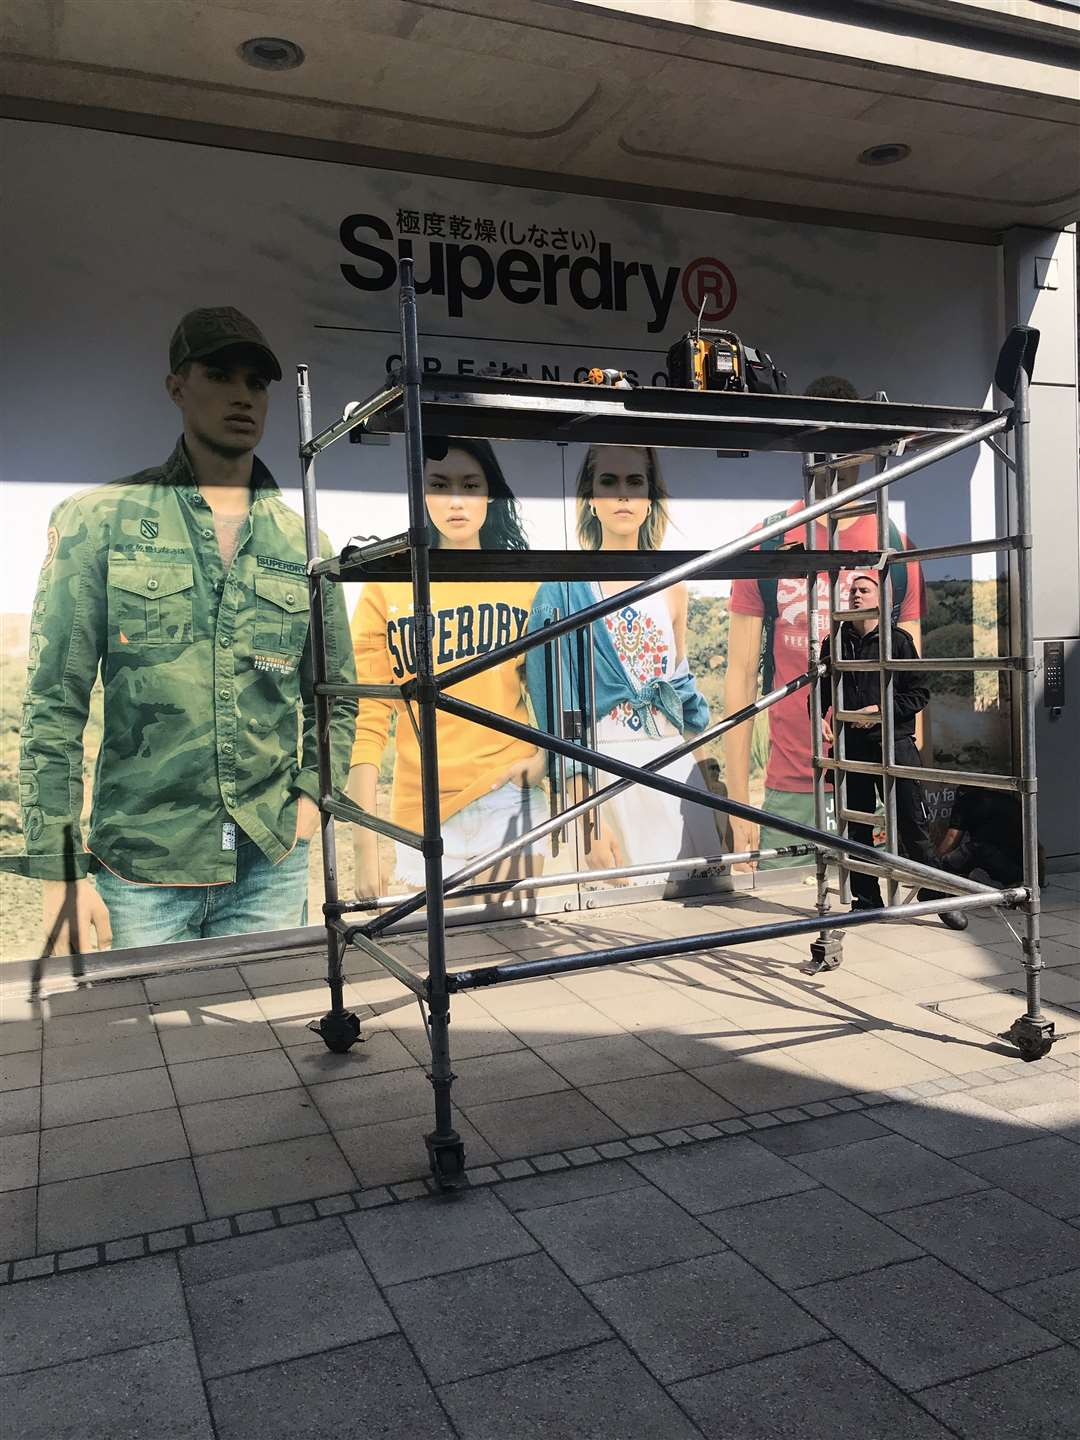 Superdry banner outside of the arc shopping centre.